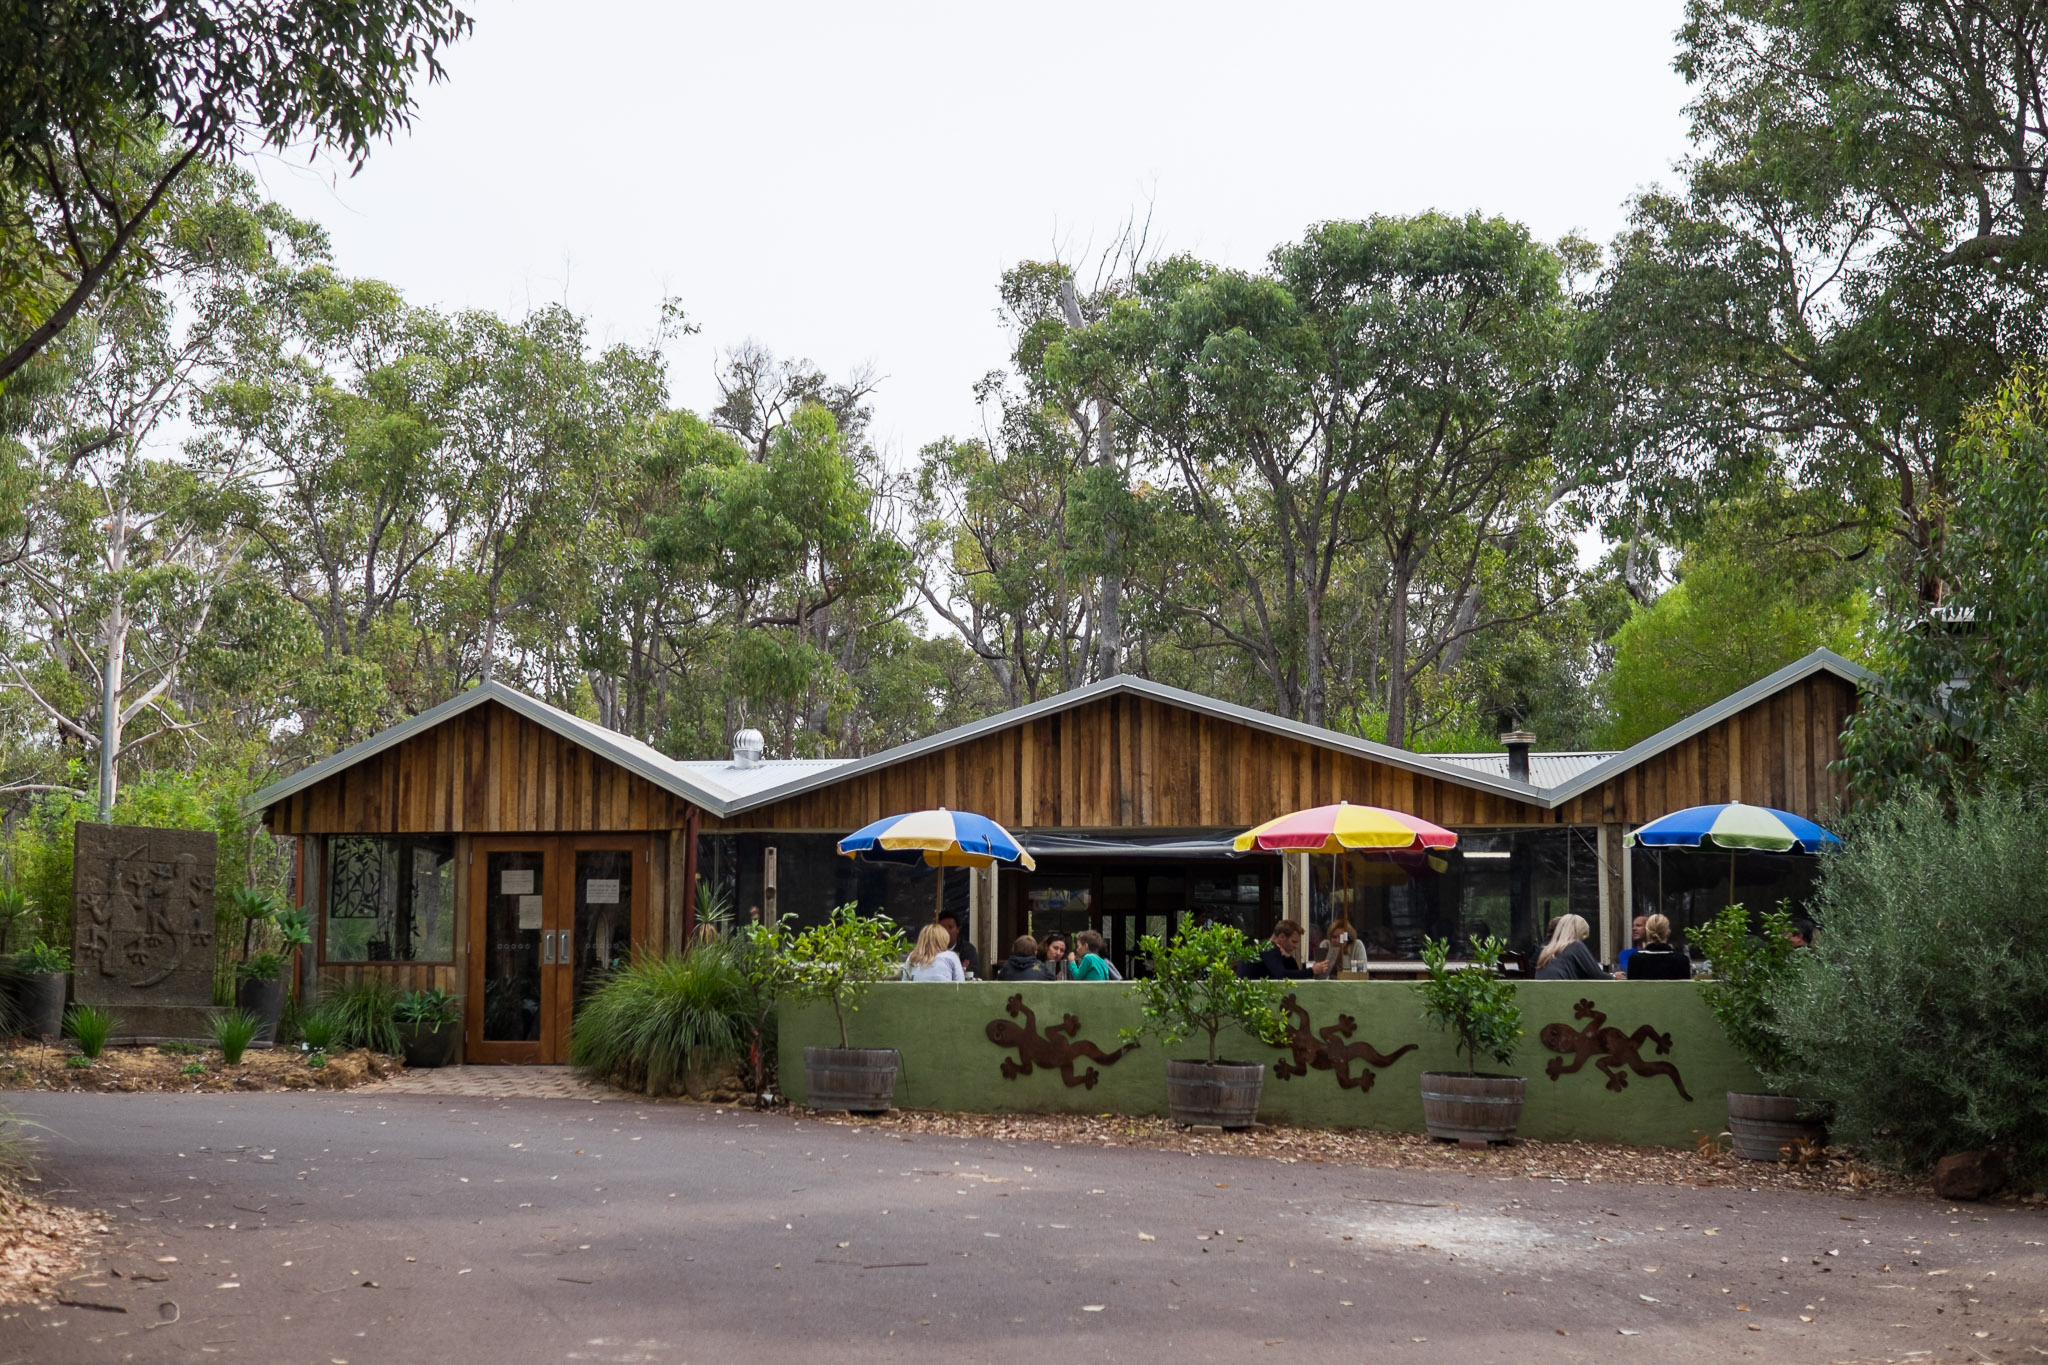 Goanna Cafe & Gallery